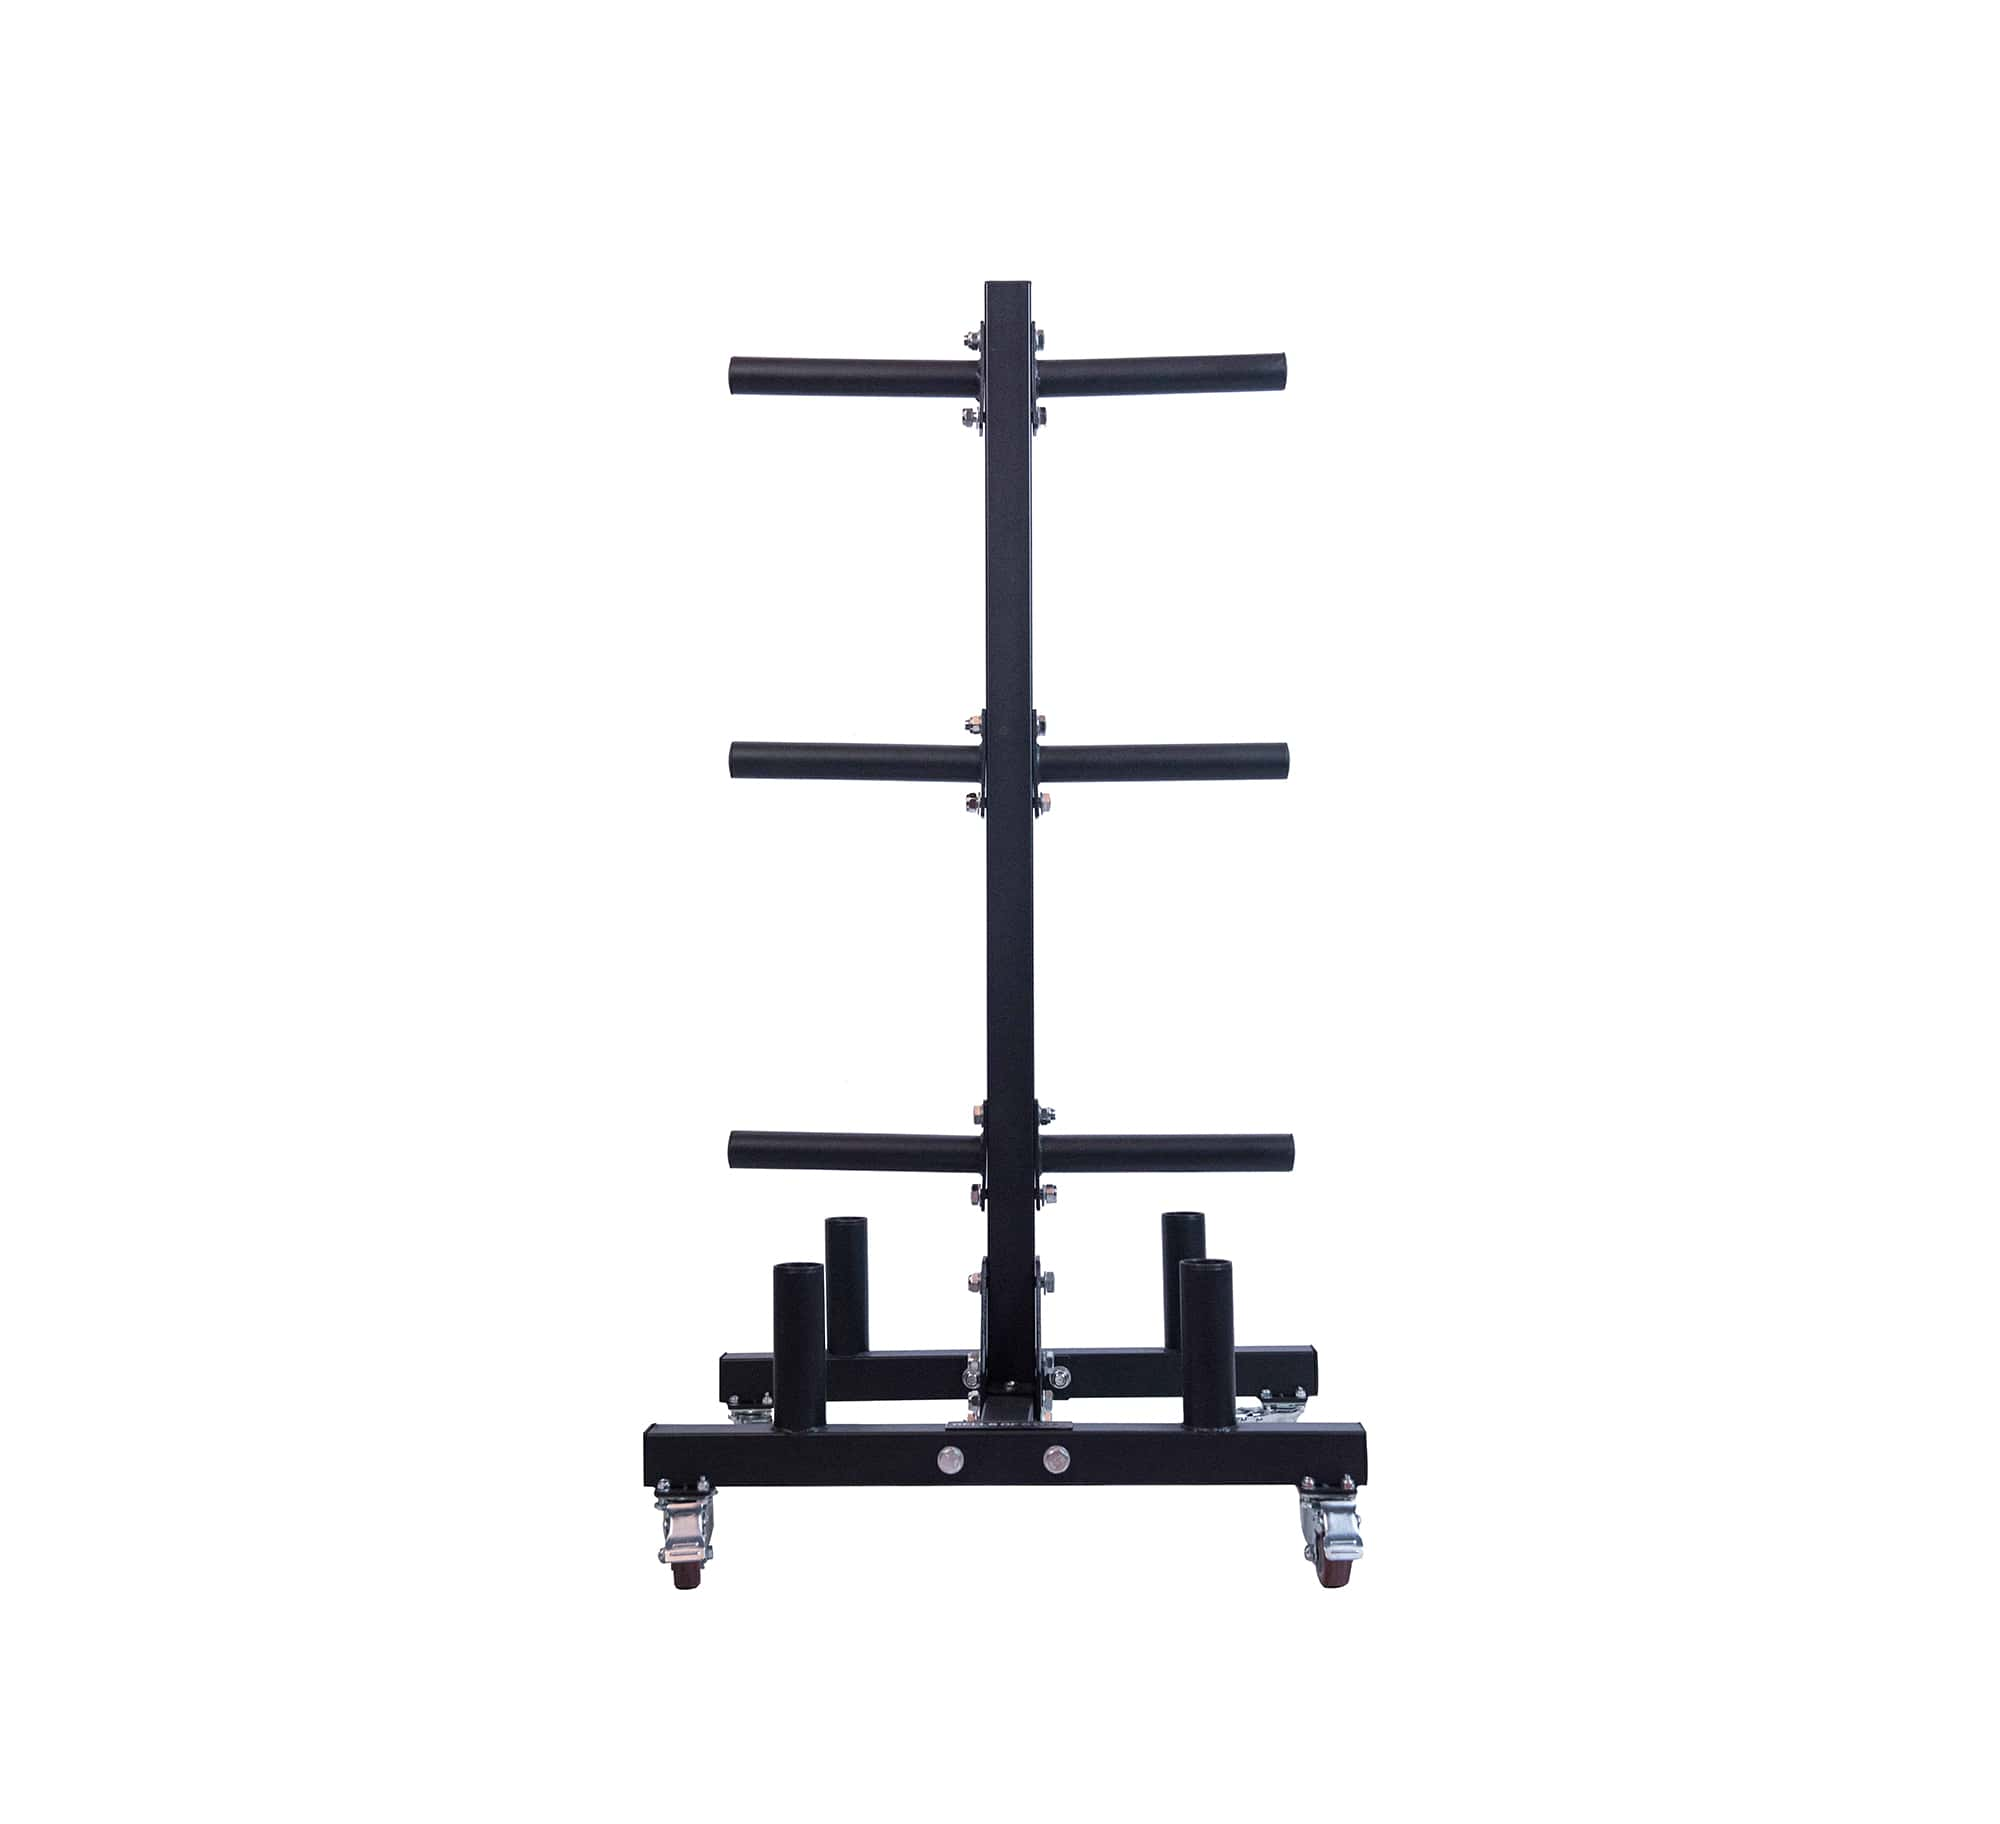 Bumper Plate Tree and Bar Holder 2.0 By B.o.S.